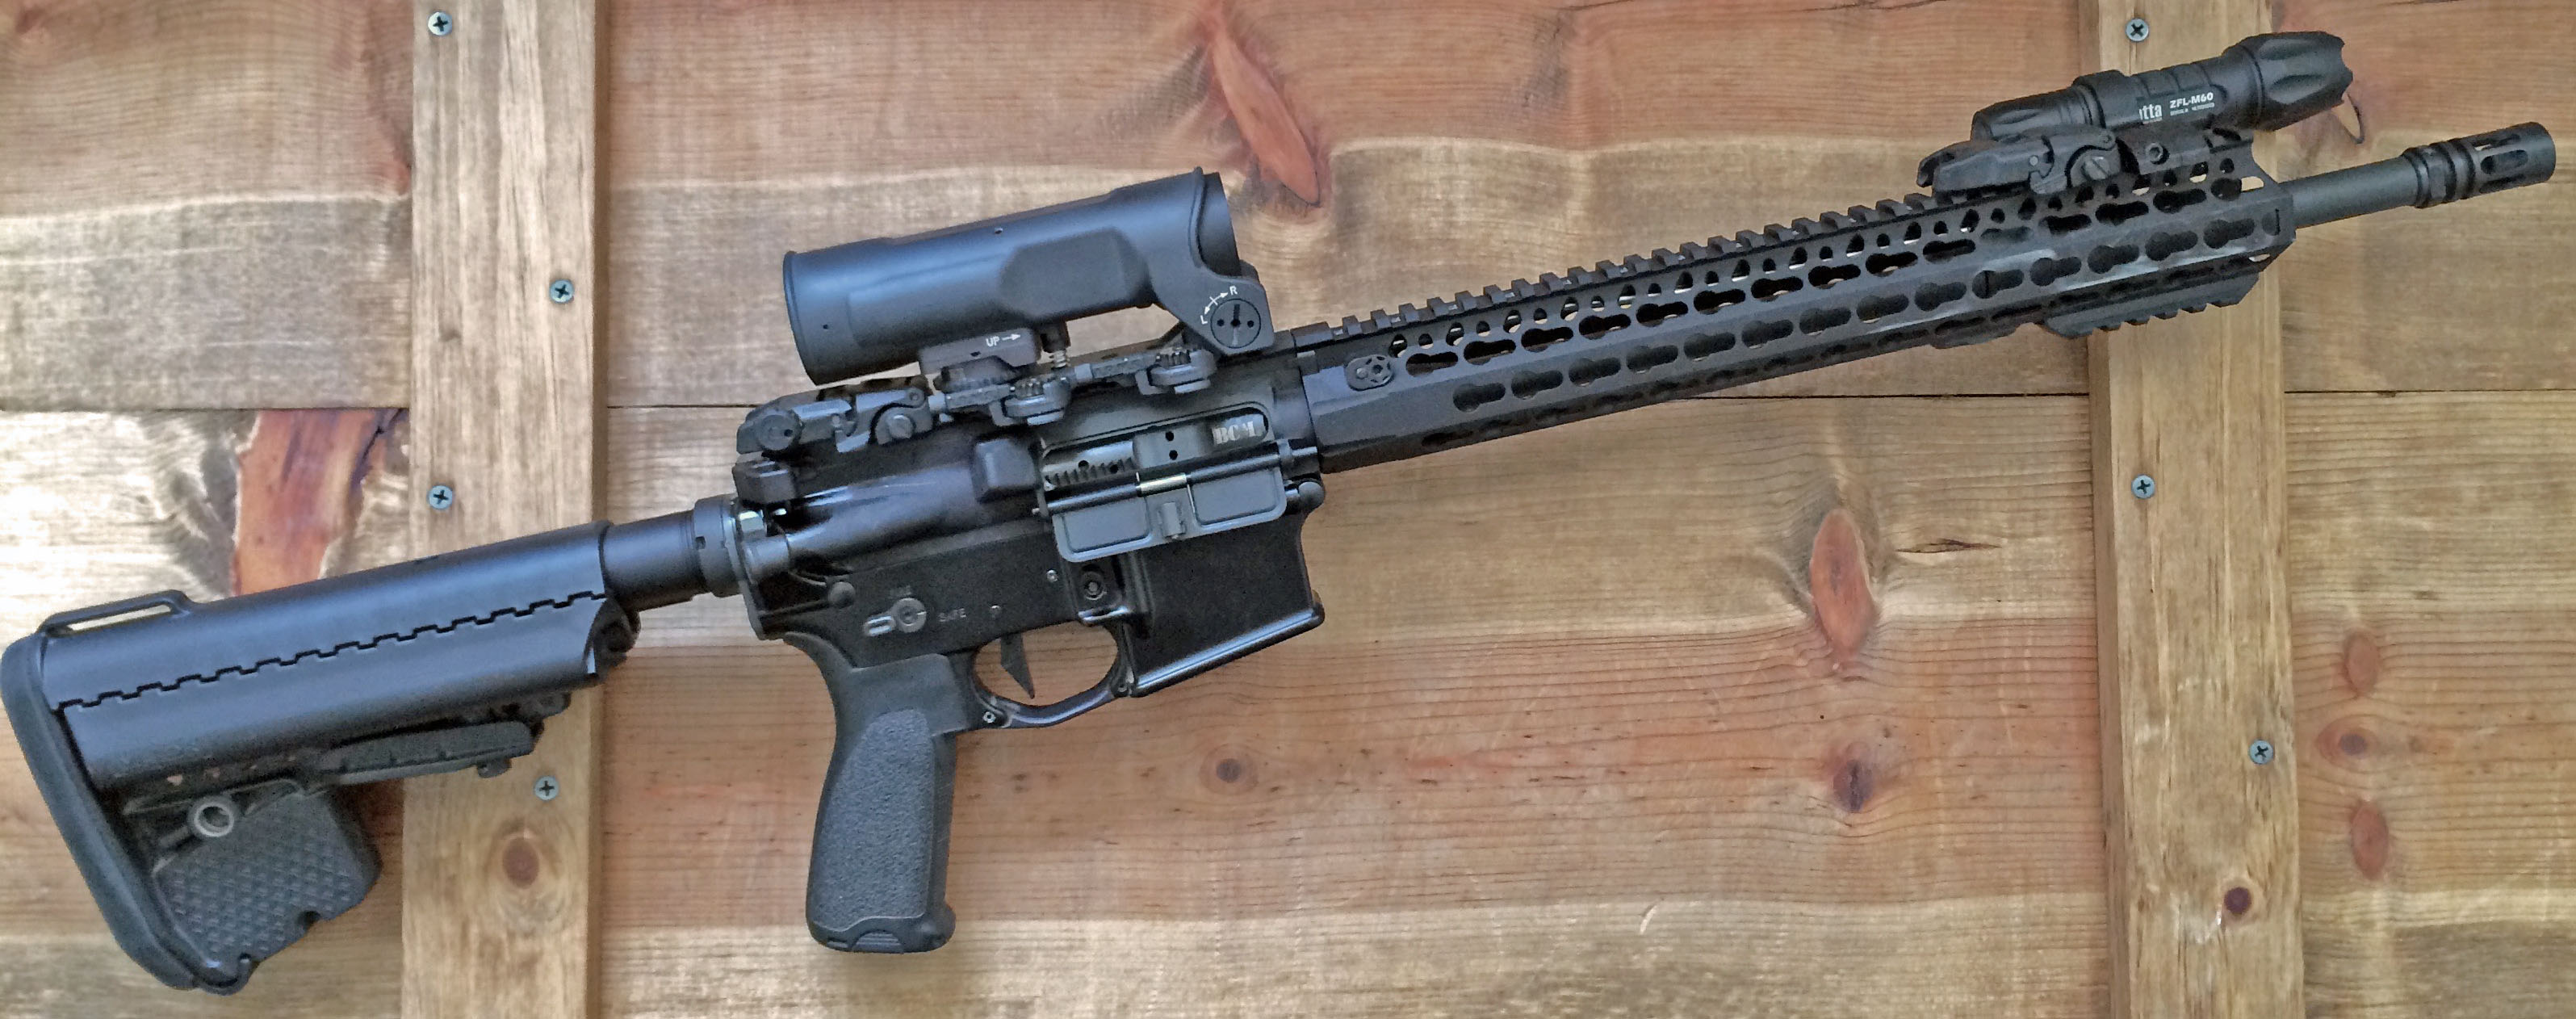 Ar 15 Guide For First Time Buyers Ver 2 0 The Everyday